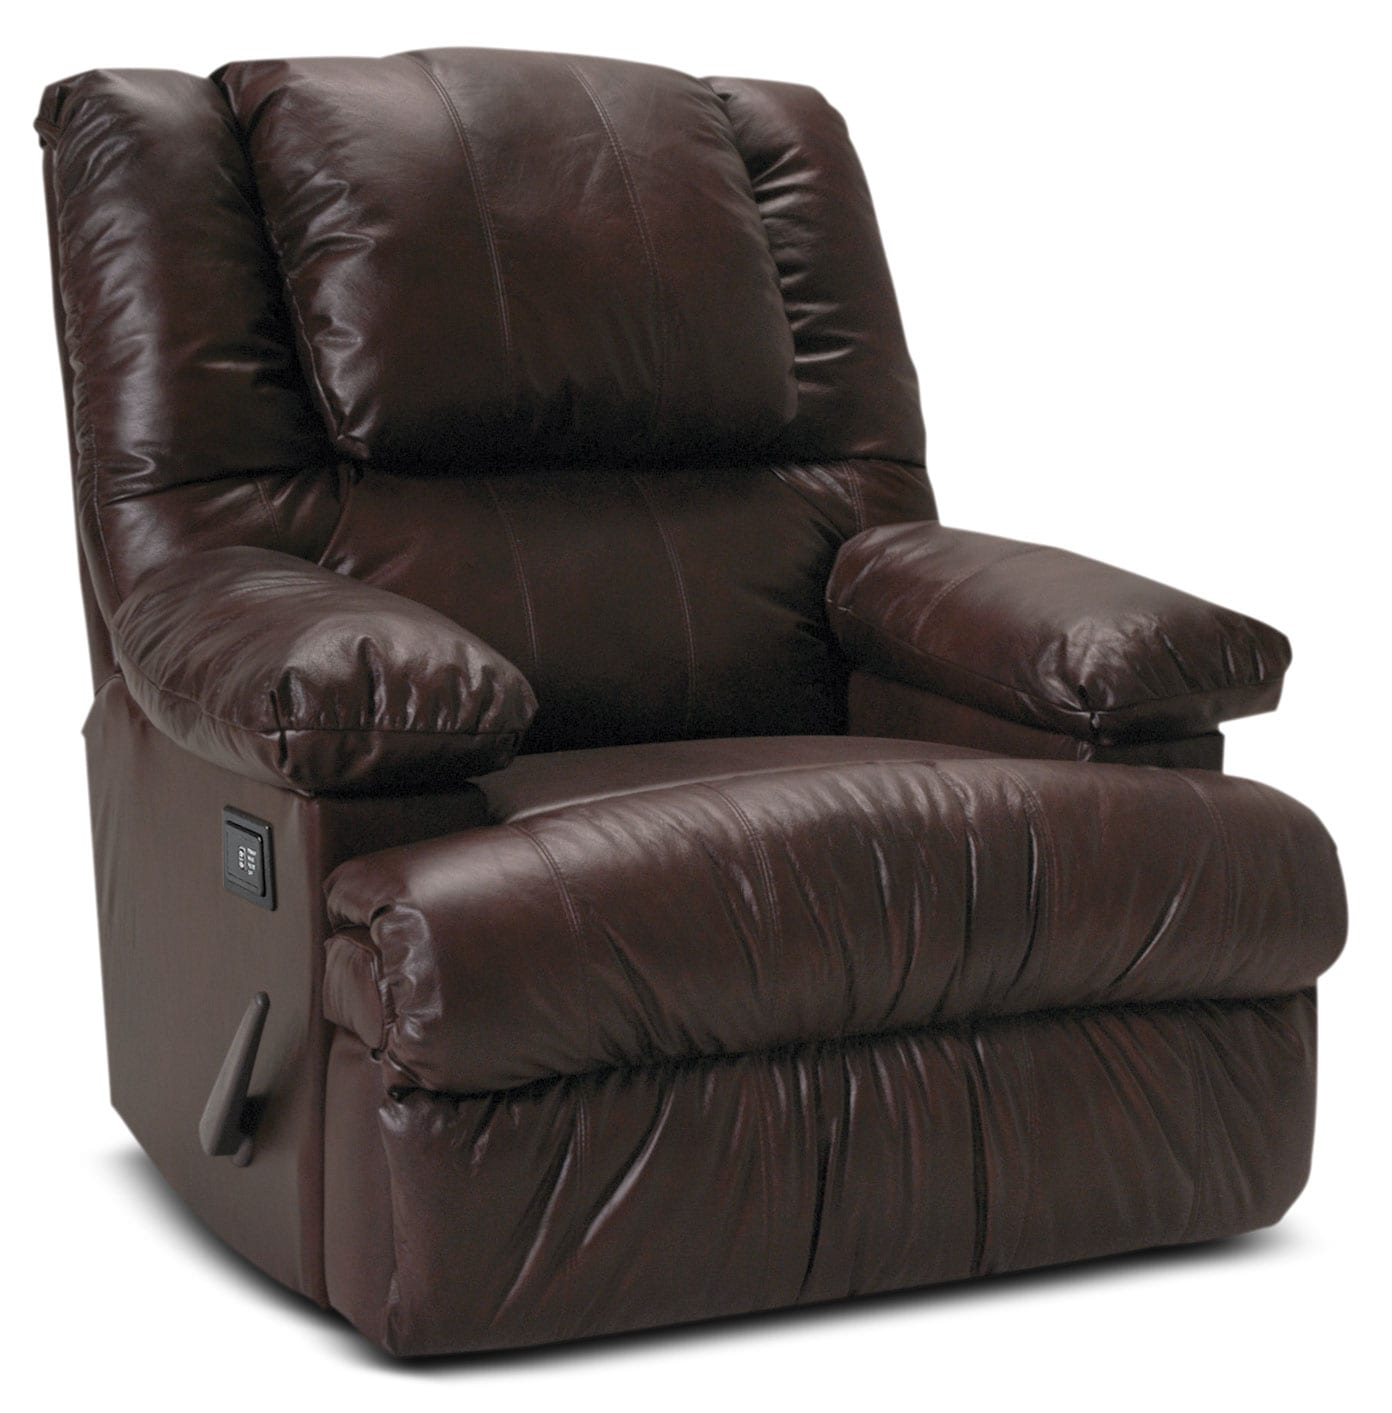 Living Room Furniture - Designed2B Recliner 5598 Bonded Leather Massage Recliner with Storage Arms - Java